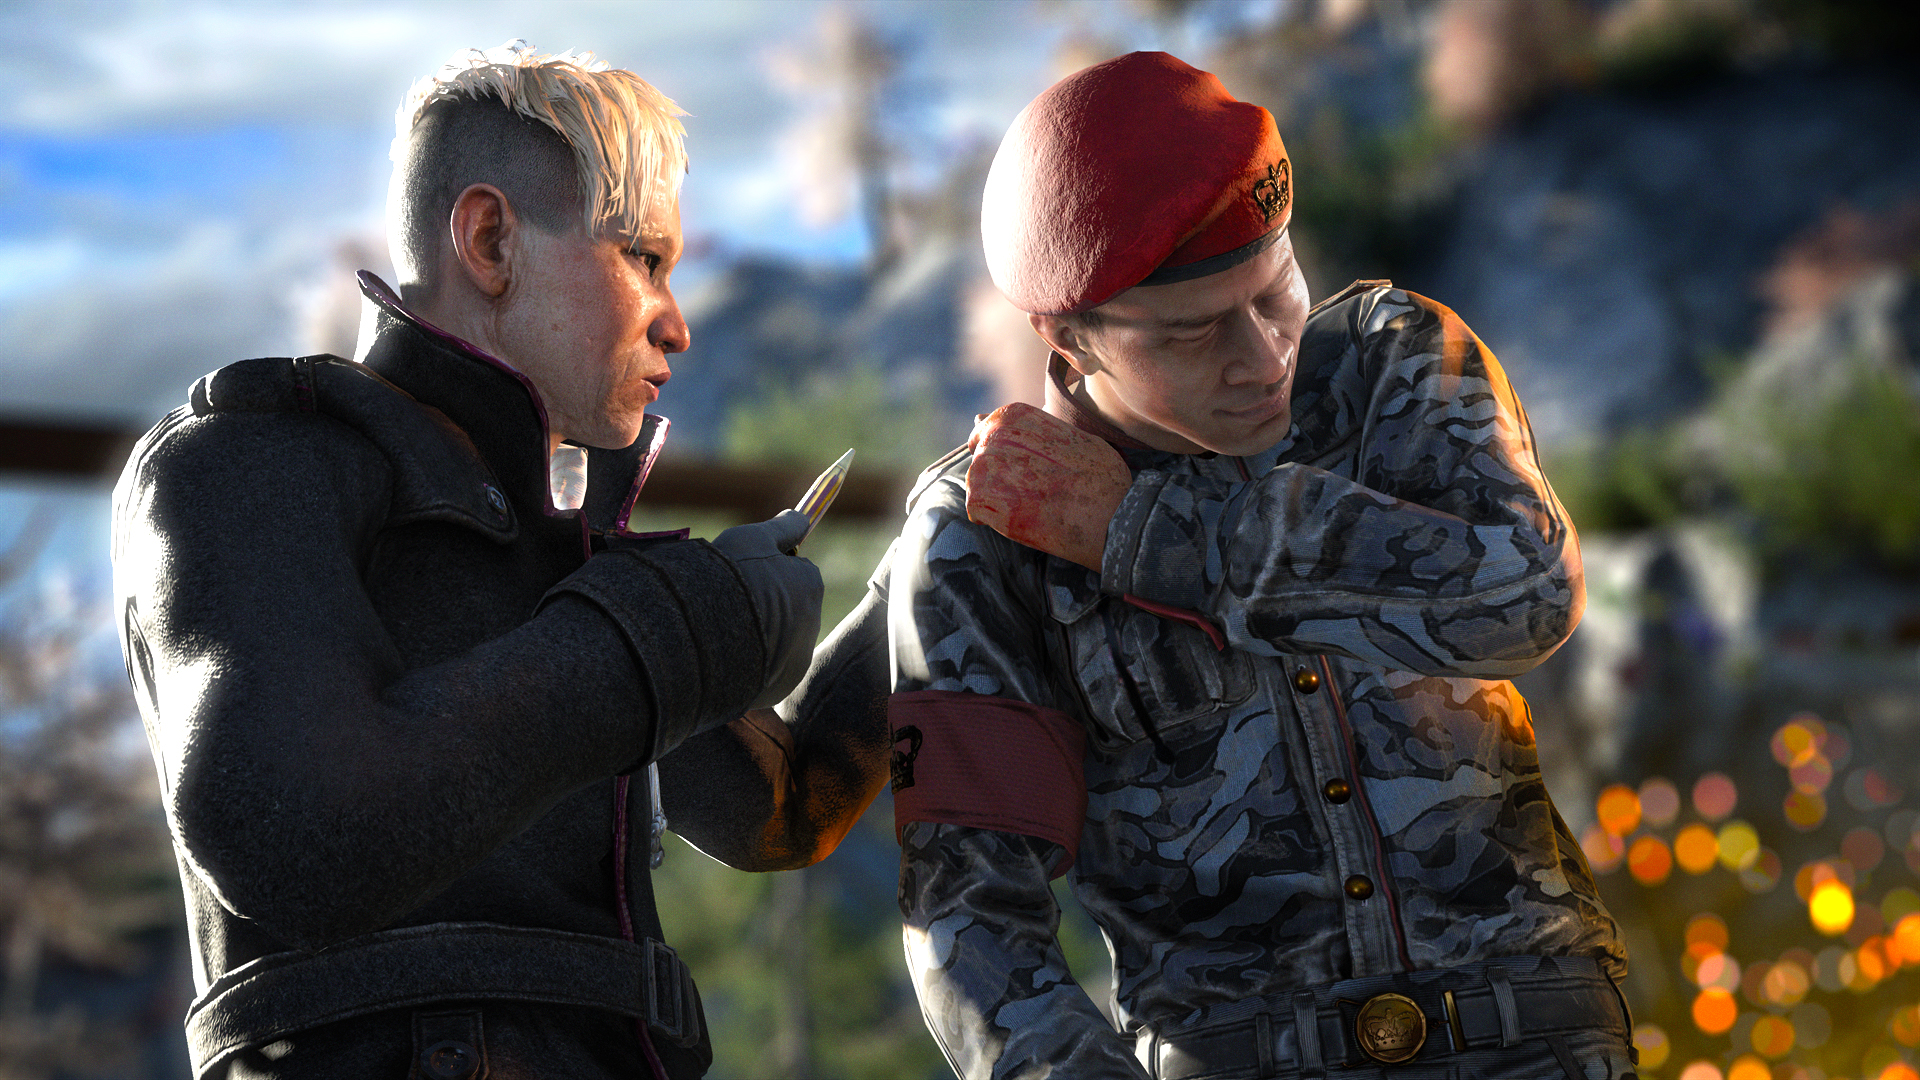 No, Far Cry 4 isn't missing that feature, you're just a pirate